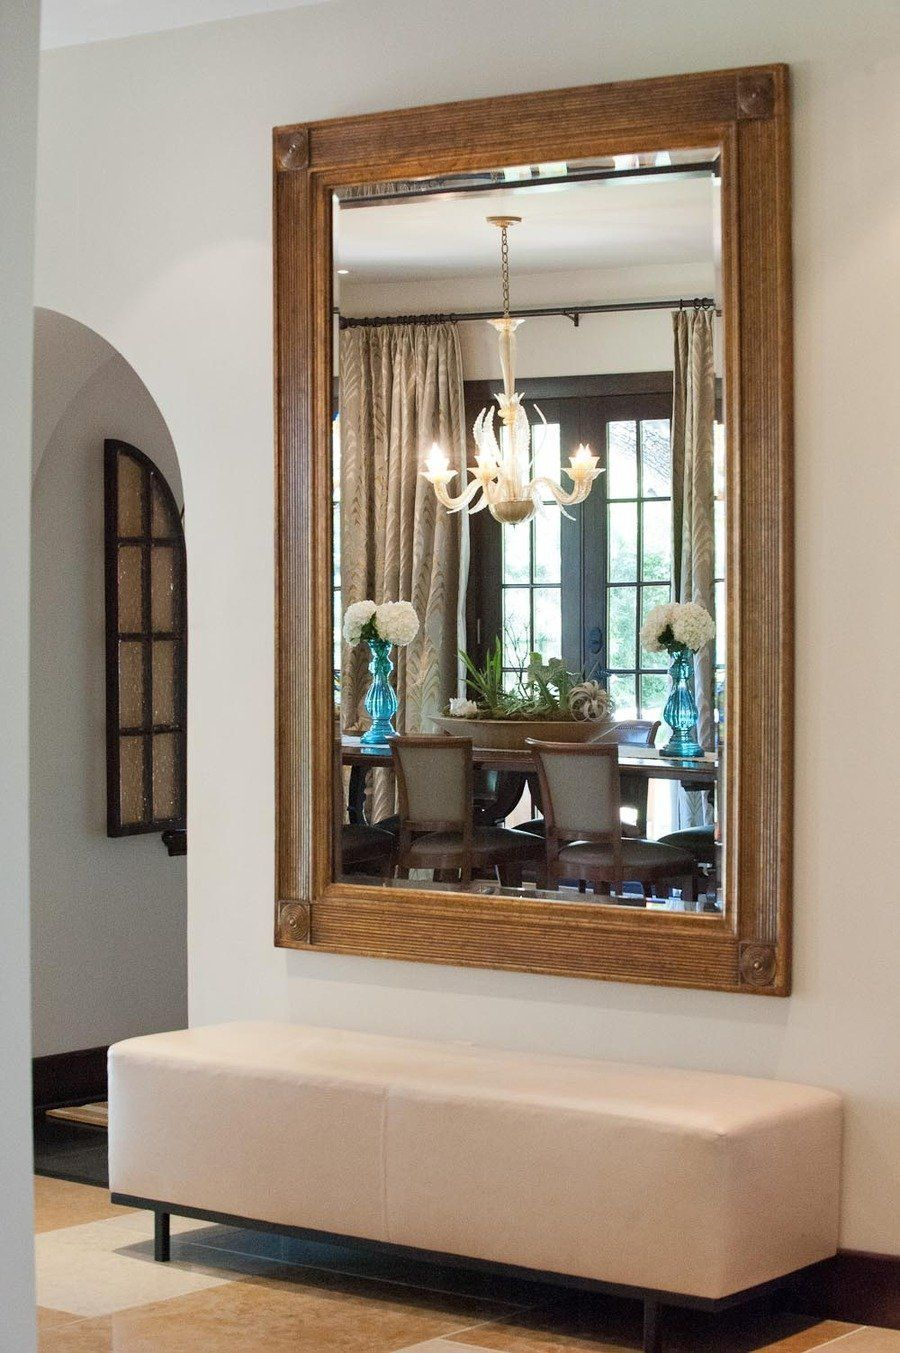 Foyer Mirror : At home with kendra scott bench foyers and giant mirror